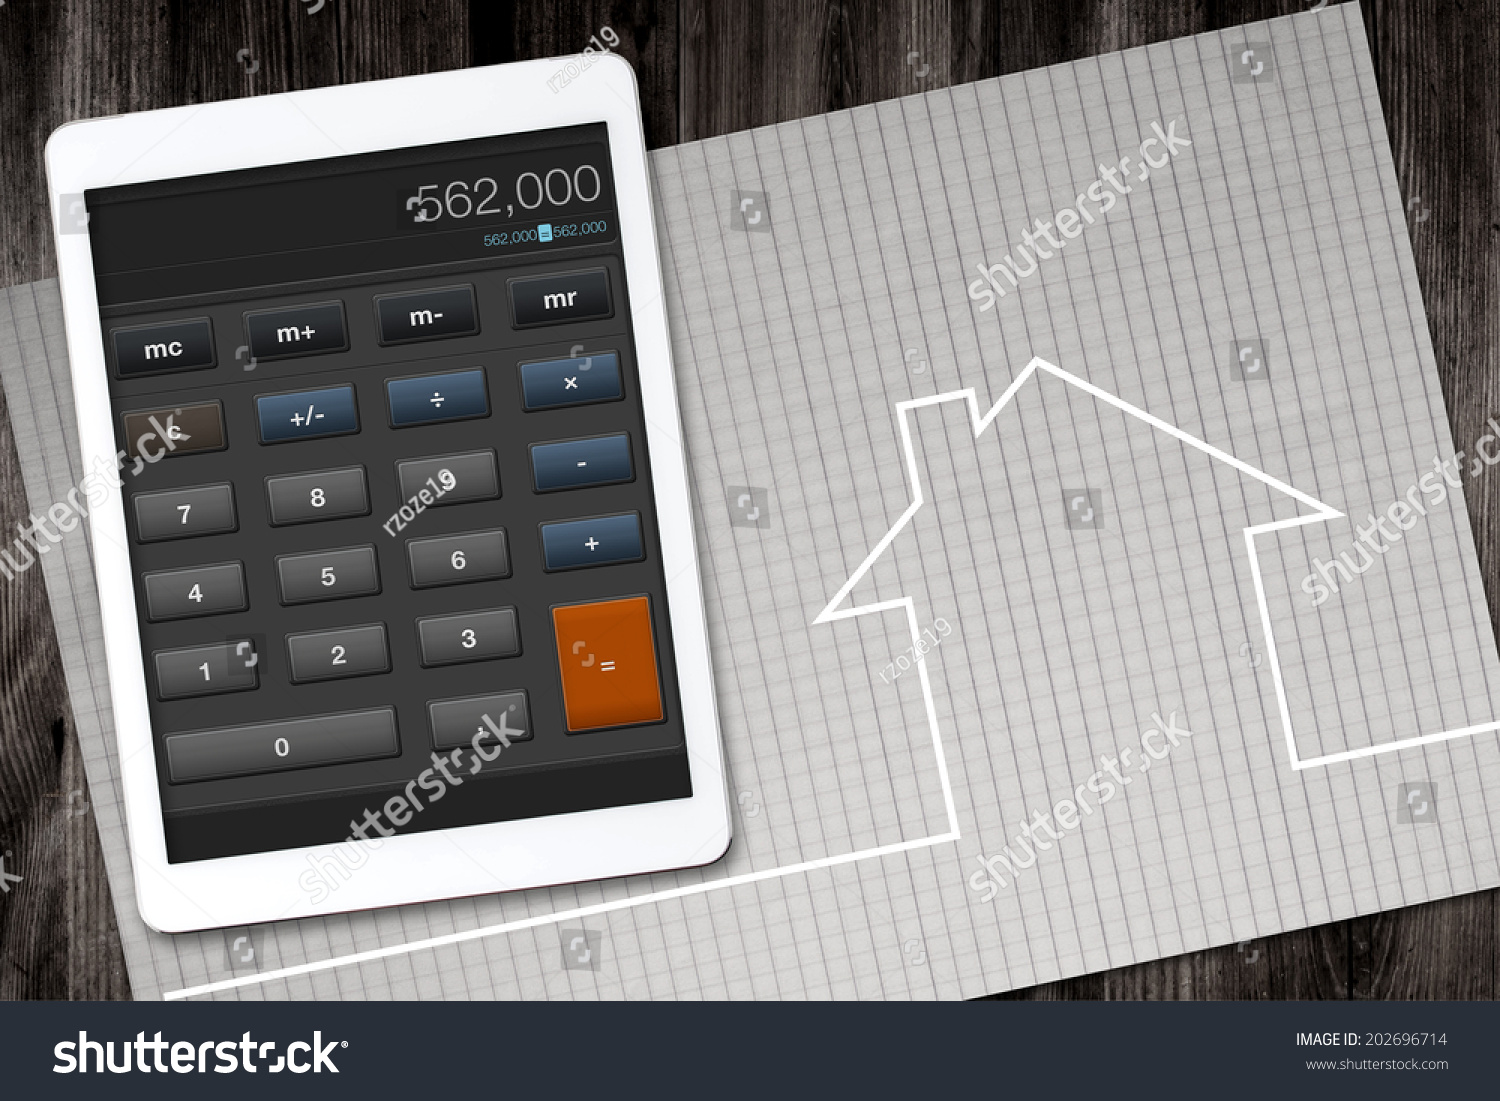 Home construction cost calculator stock photo 202696714 for Build a home calculator